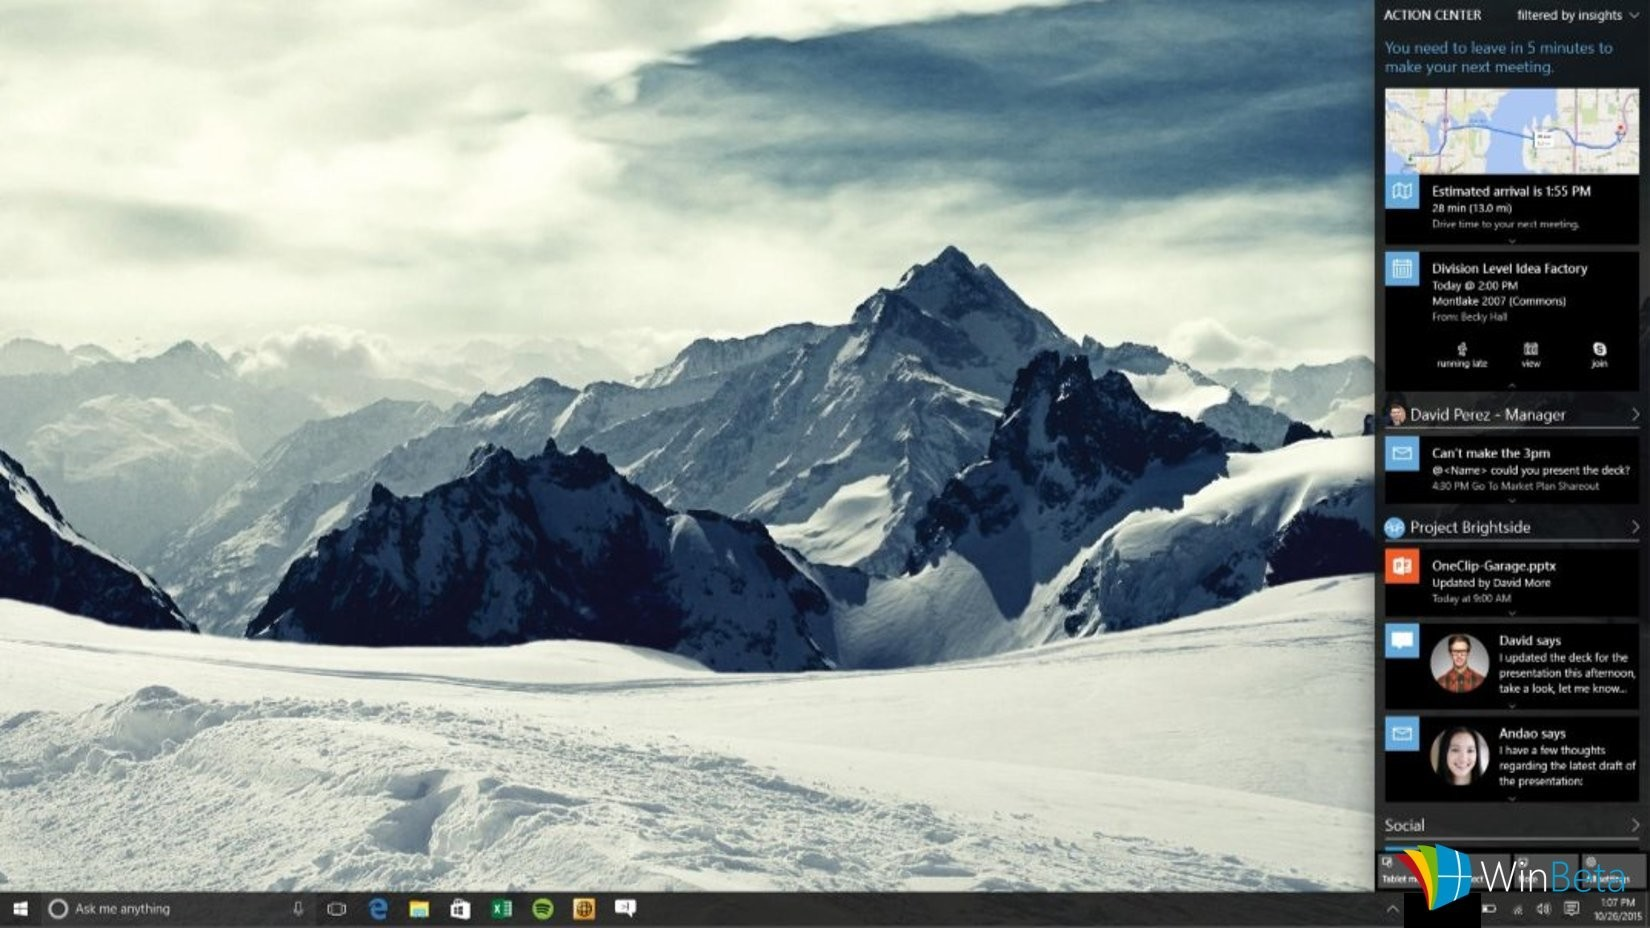 Action Center and Cortana to use cards in upcoming Windows 10